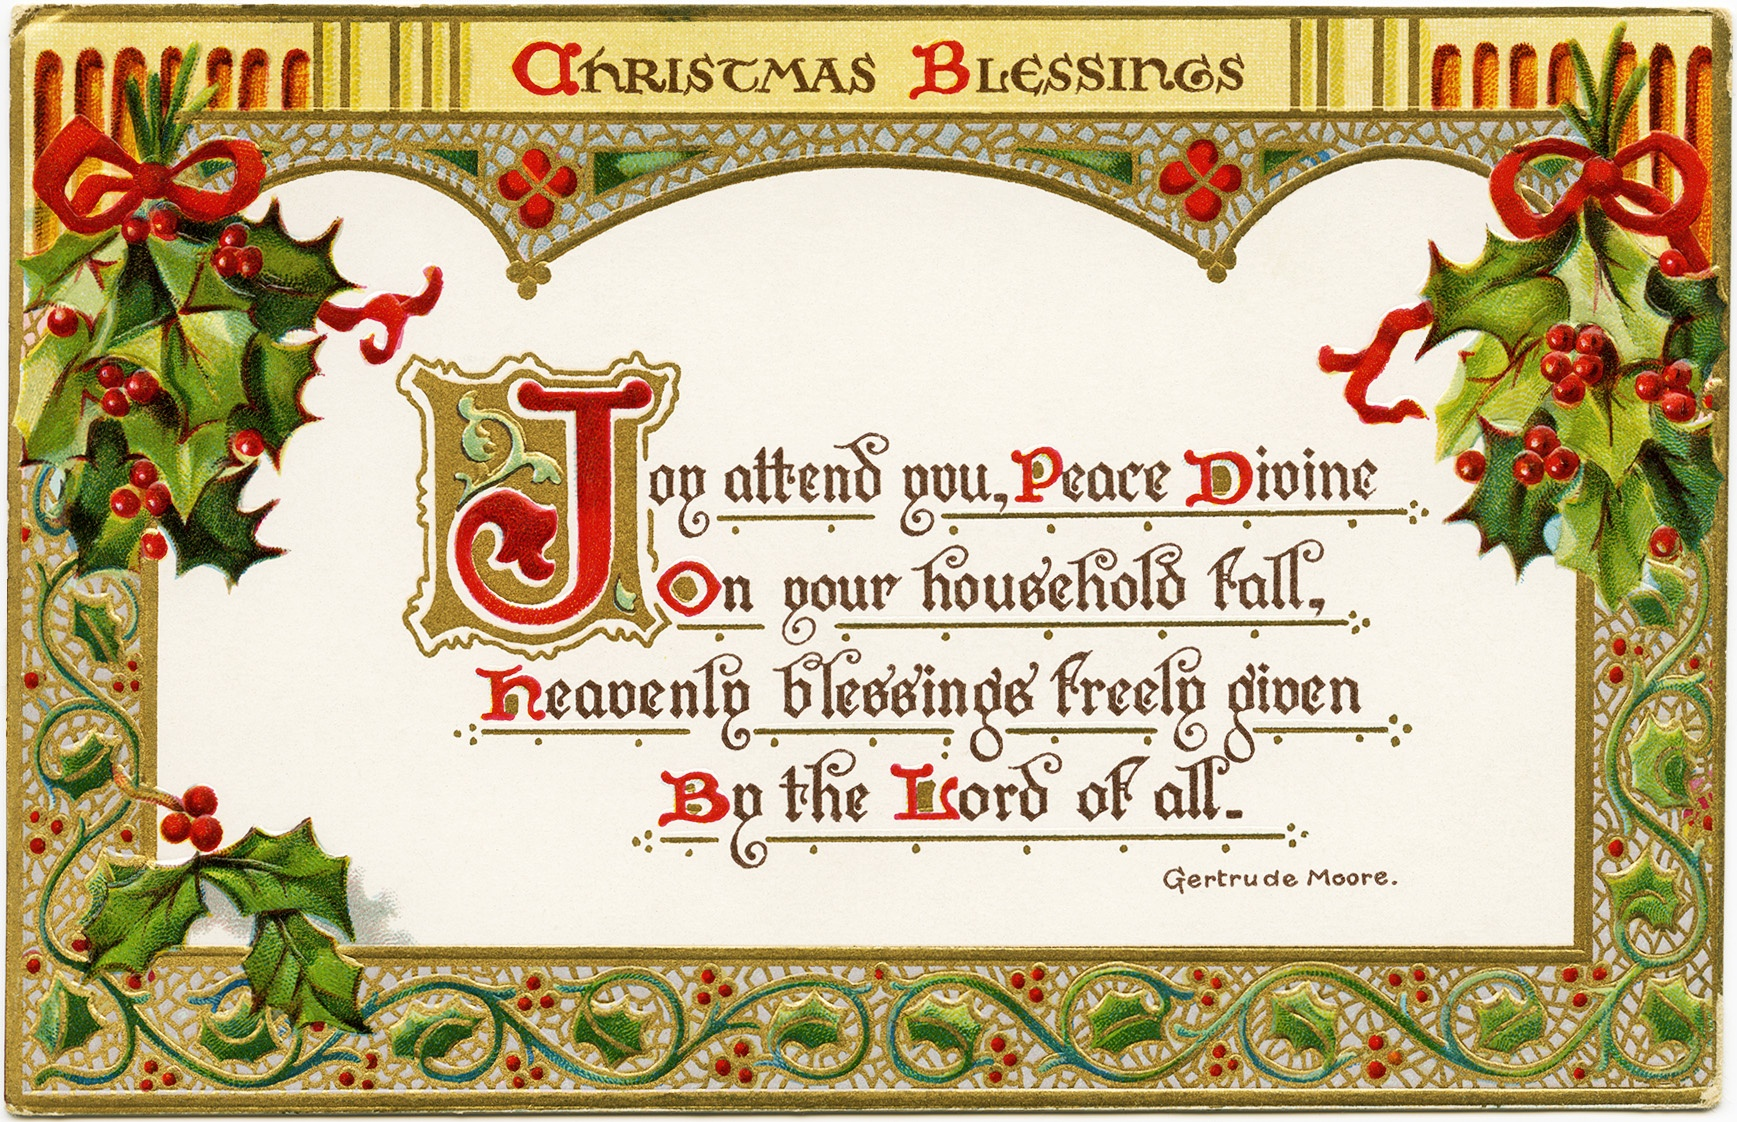 Christmas Blessings ~ Free Vintage Postcard Graphic - Old Design - Free Printable Vintage Christmas Clip Art